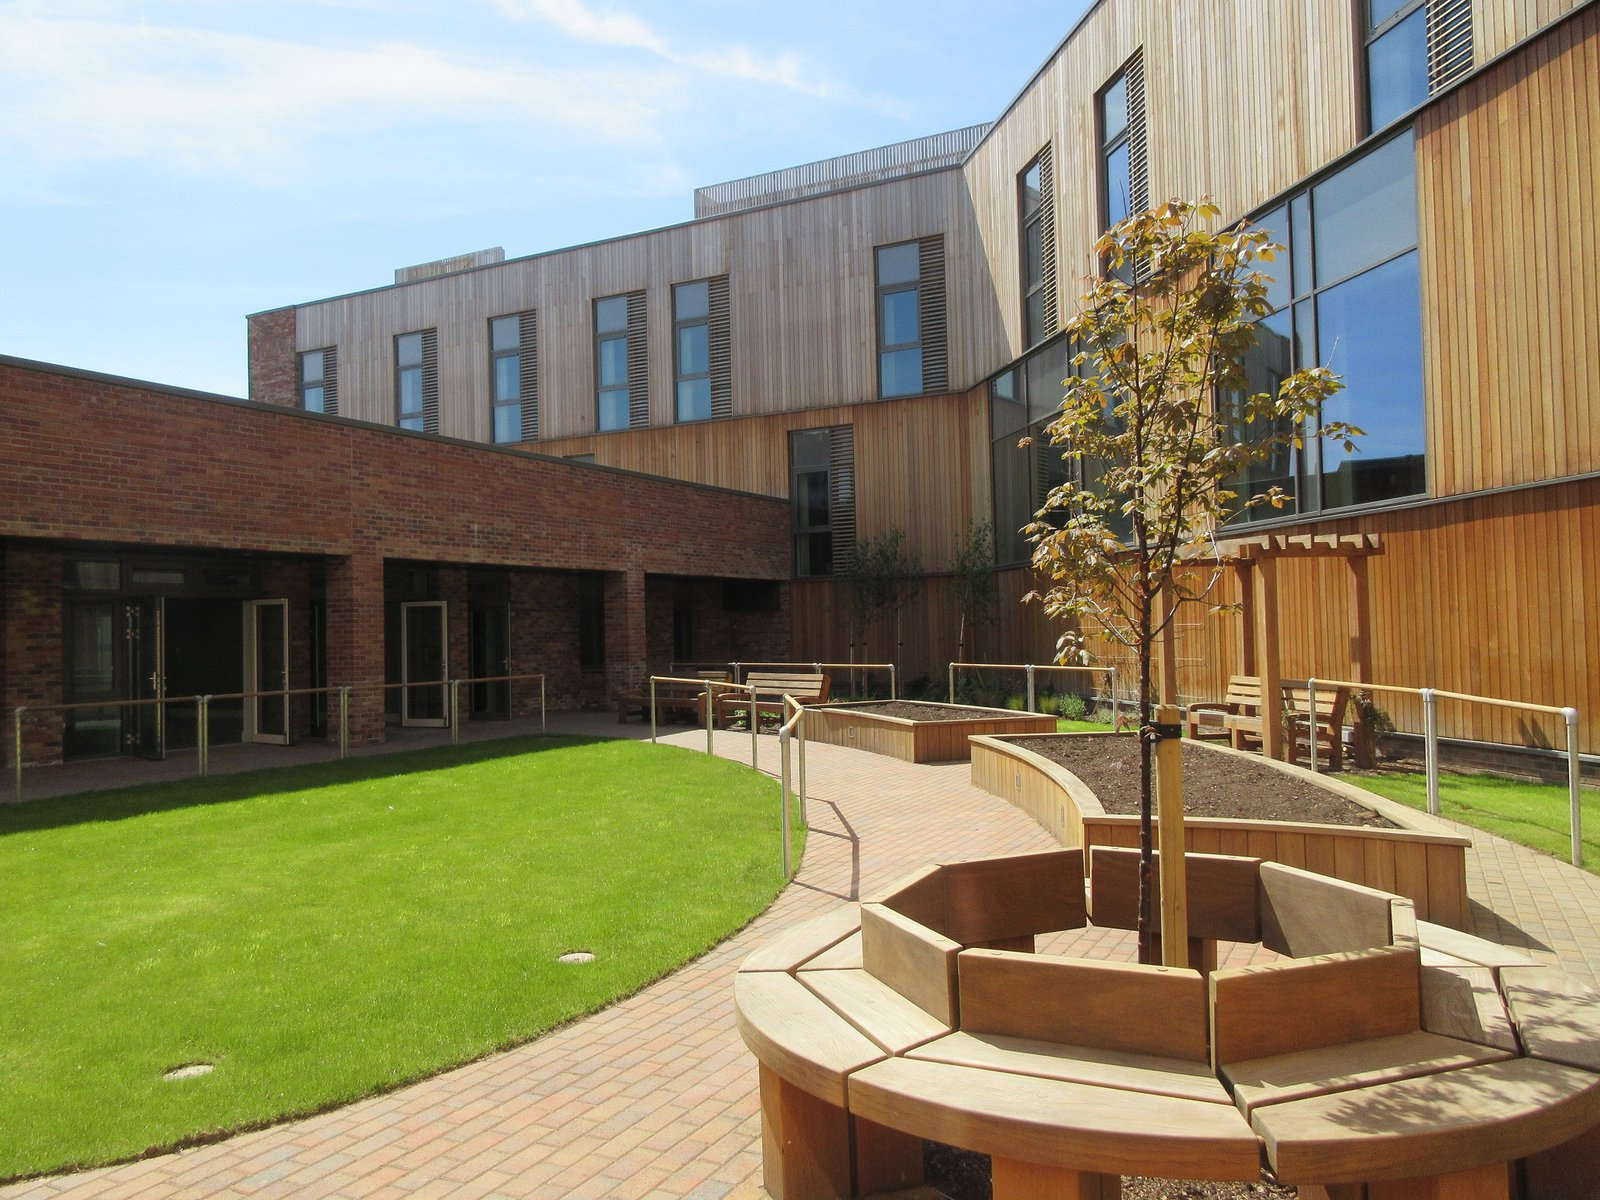 Image of the rear of the Woodside Health Centre in Scotland which shows the garden area